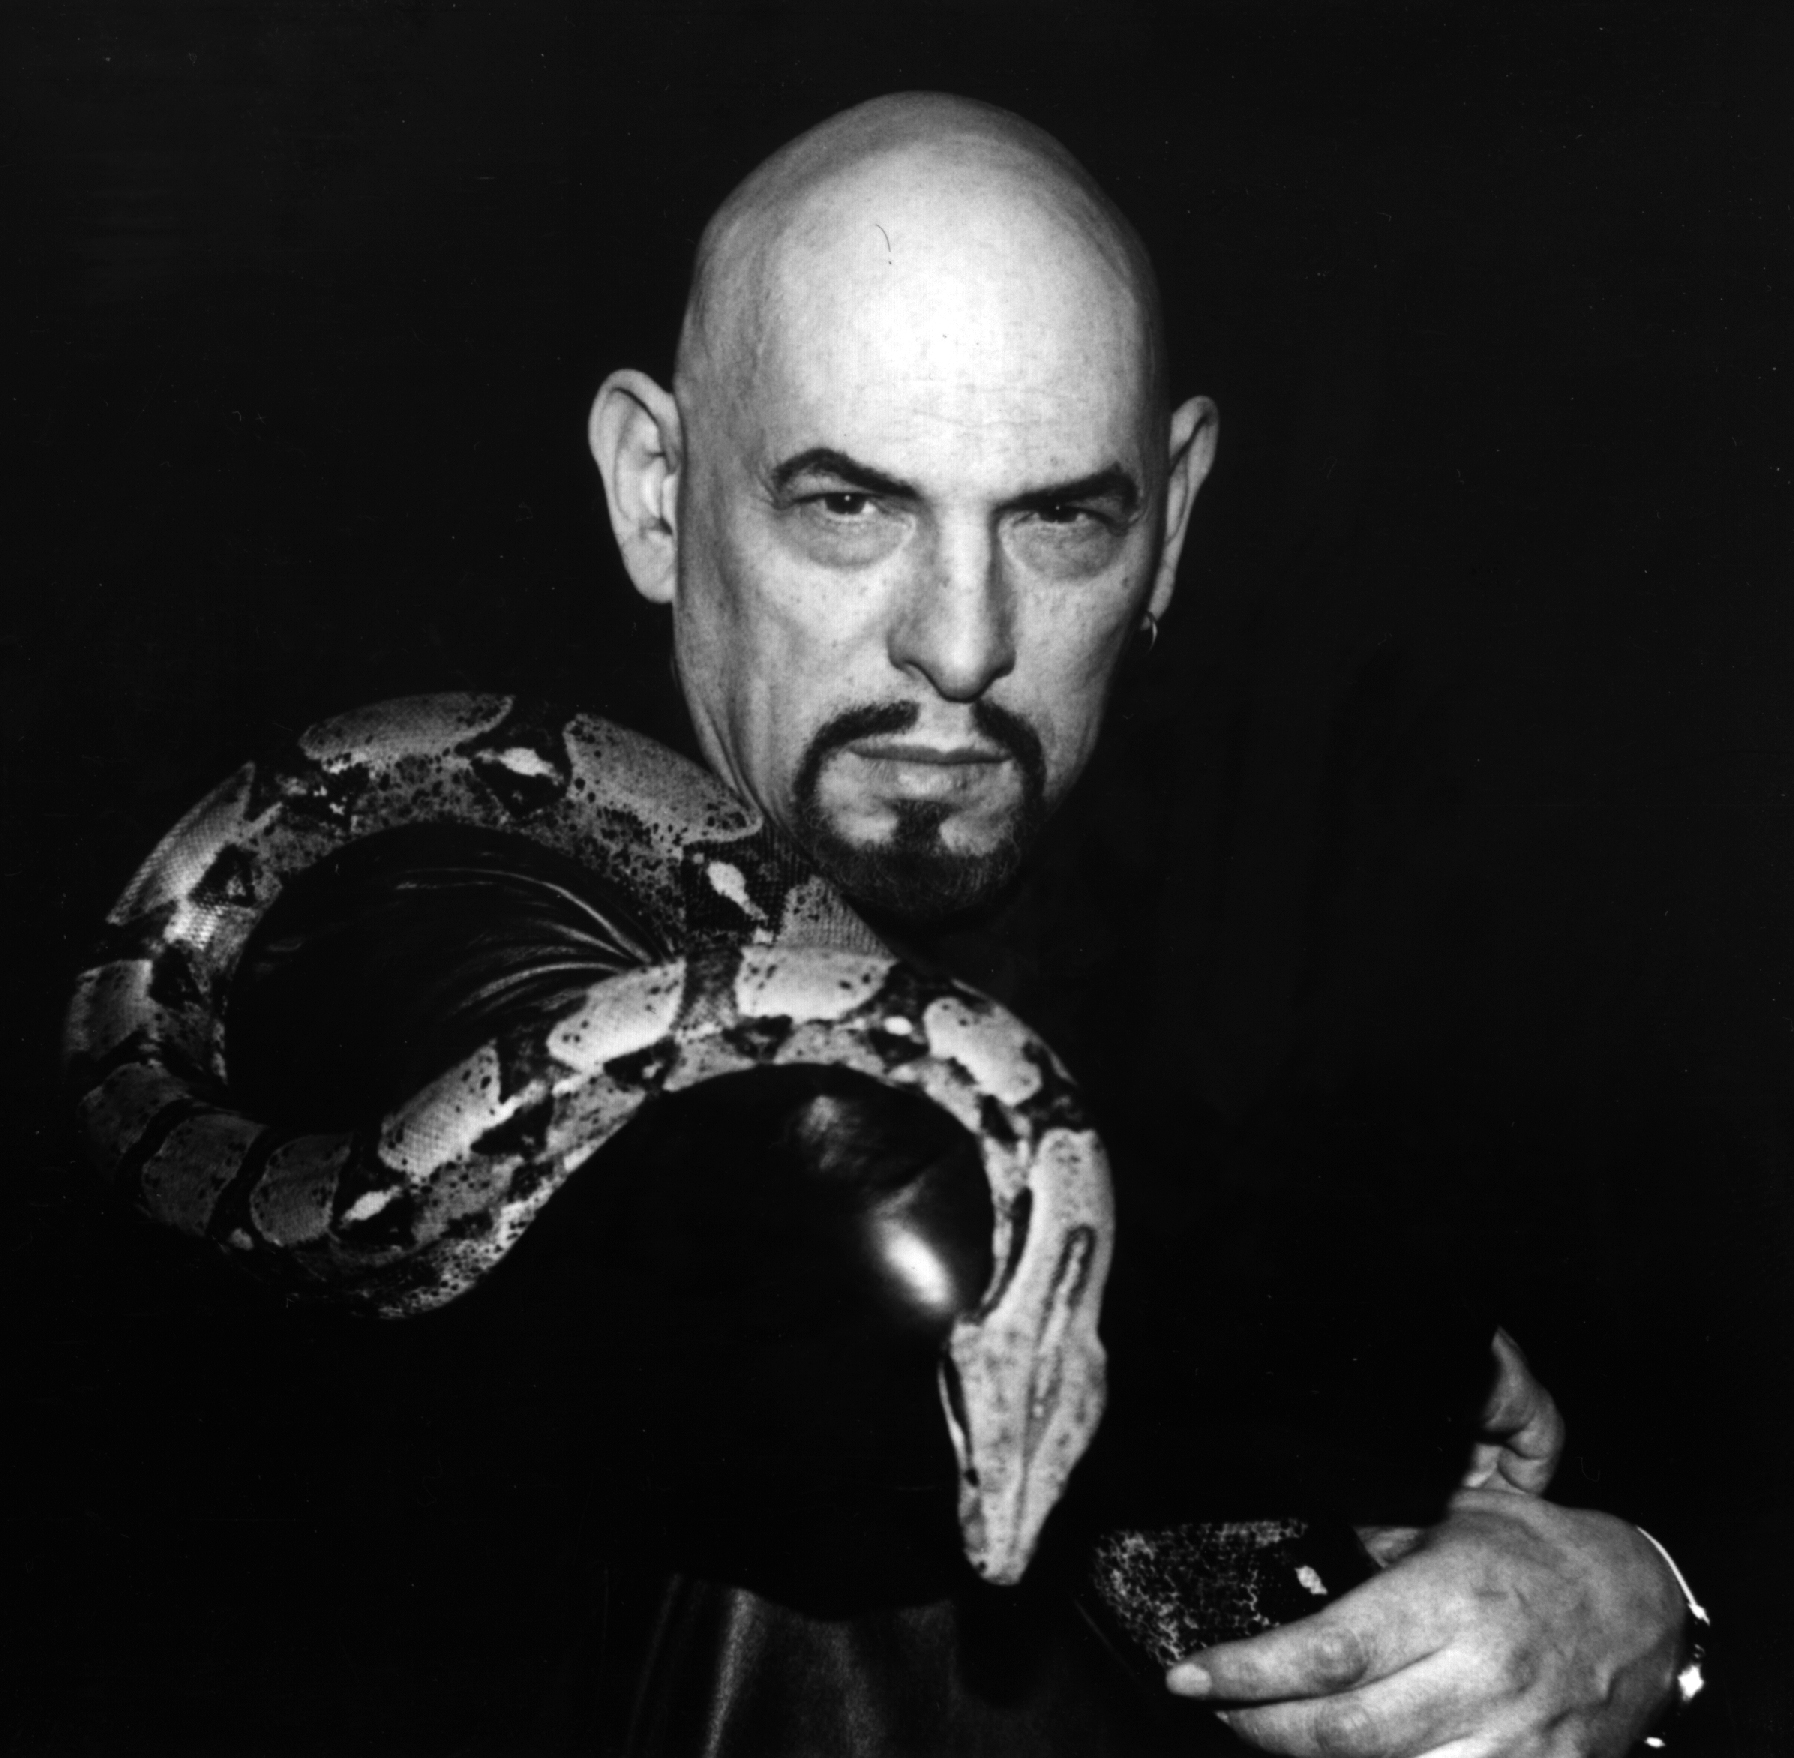 Anton LaVey with a friend